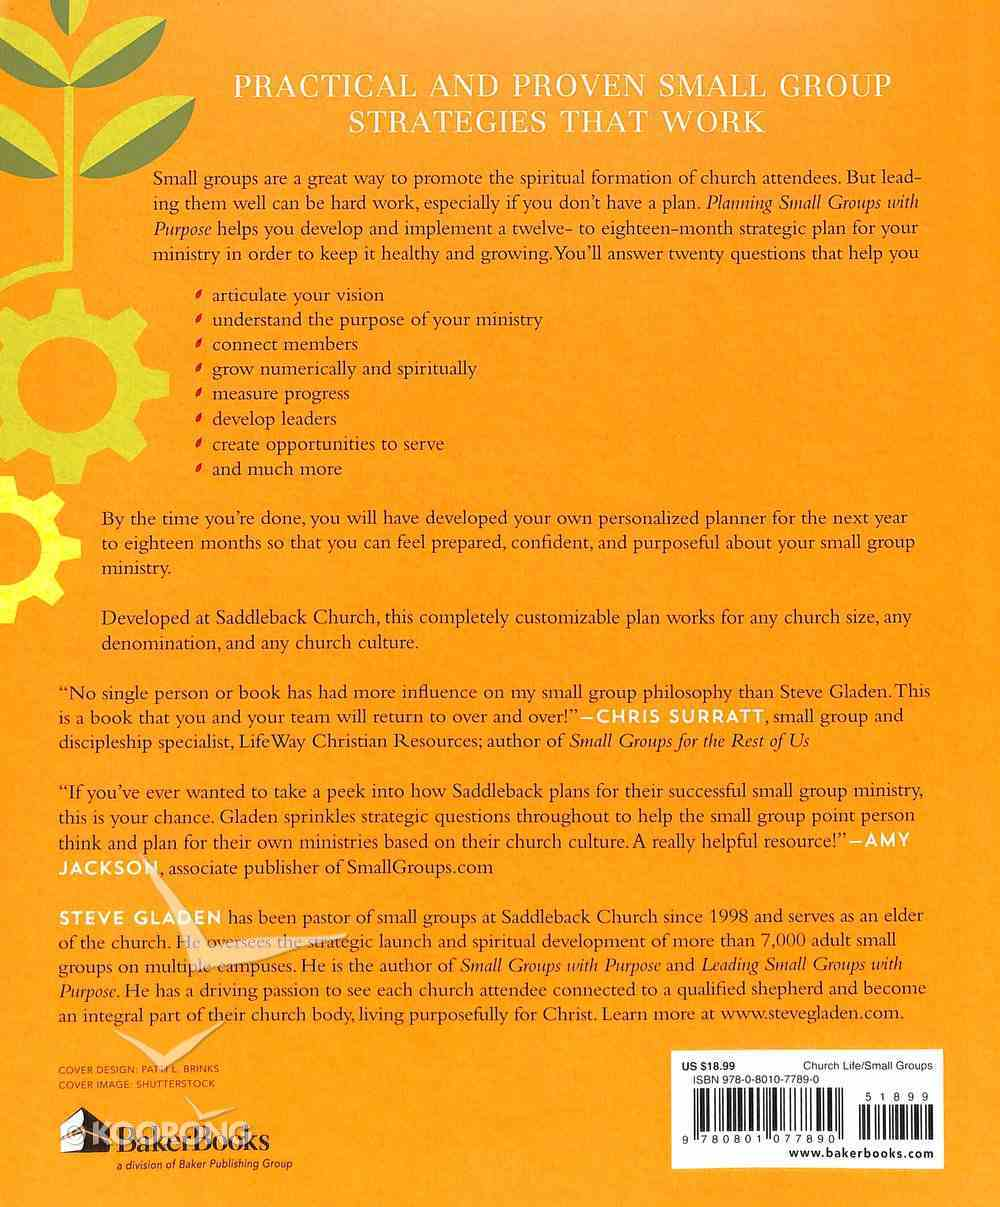 Planning Small Groups With Purpose: A Field-Tested Guide to Design and Grow Your Ministry Paperback